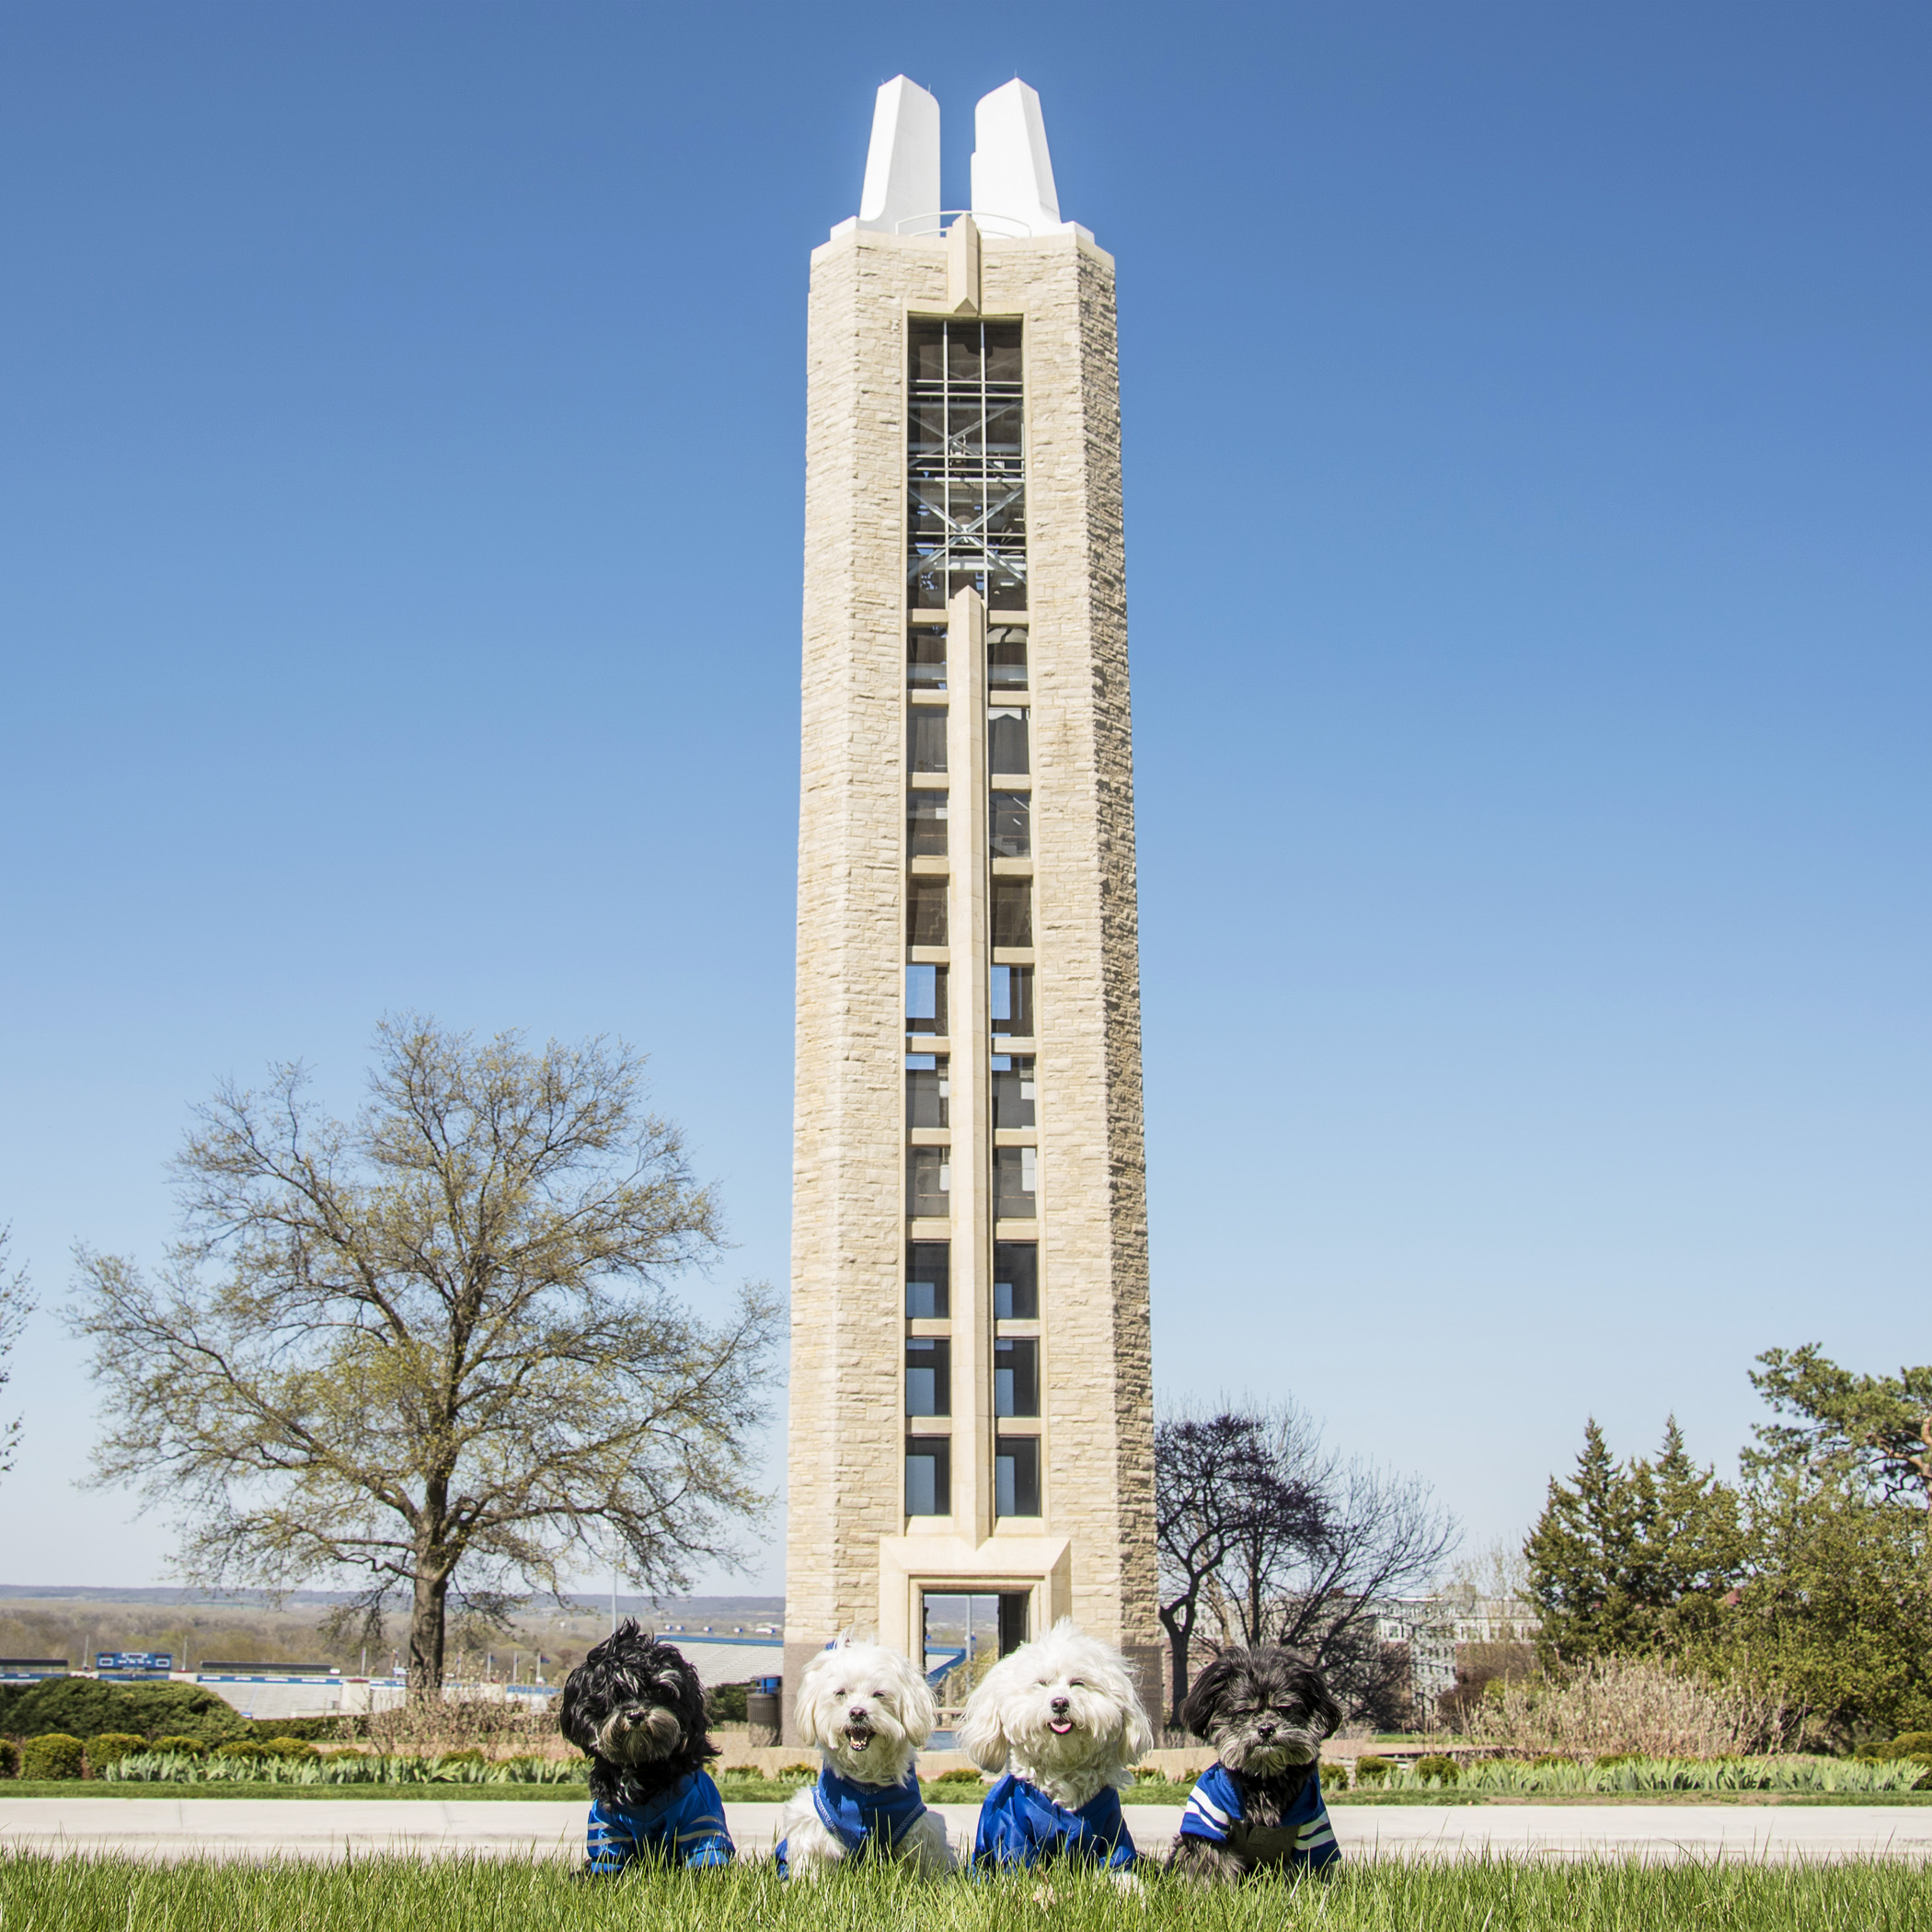 Do you think we'll graduate someday and walk through the Campanile?